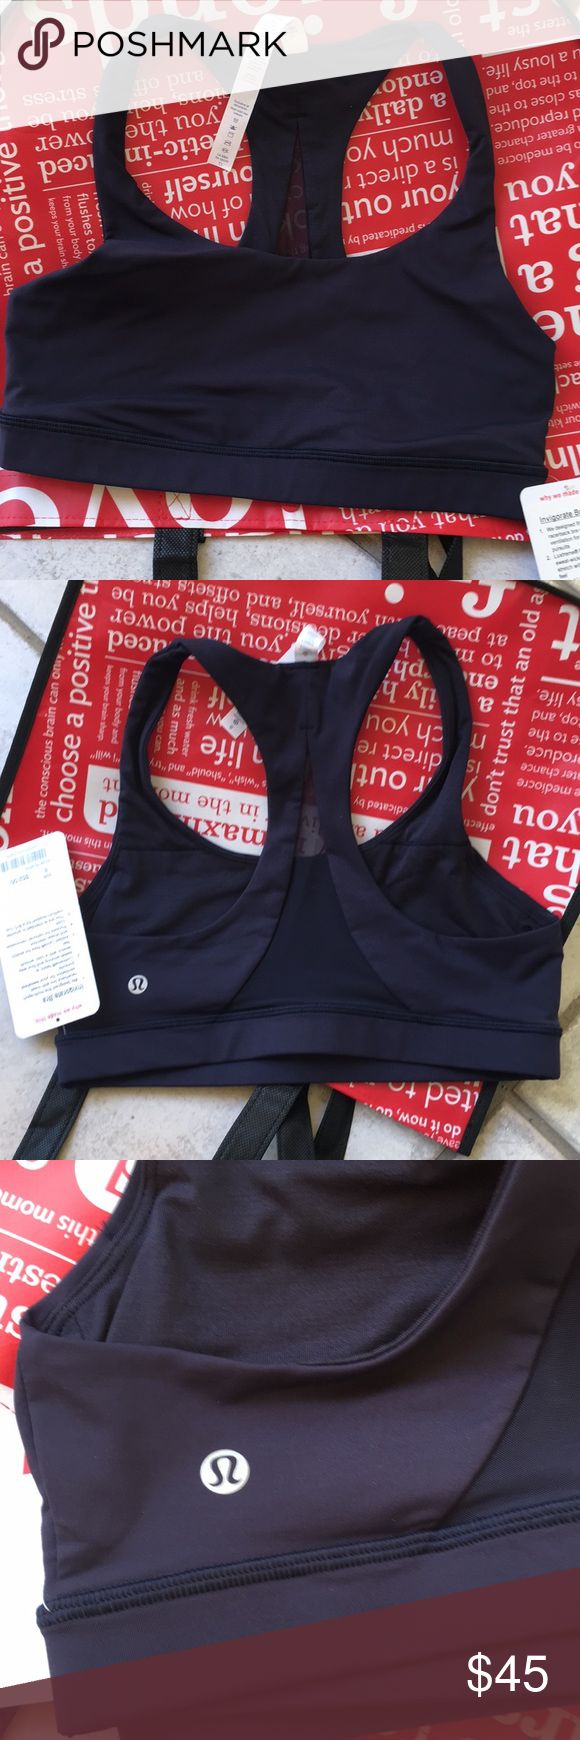 Lululemon Navy Sports Bra NWT!!! Lululemon Navy Sports Bra! The Invigorate Bra, has a sheer back! Size 8 lululemon athletica Intimates & Sleepwear Bras